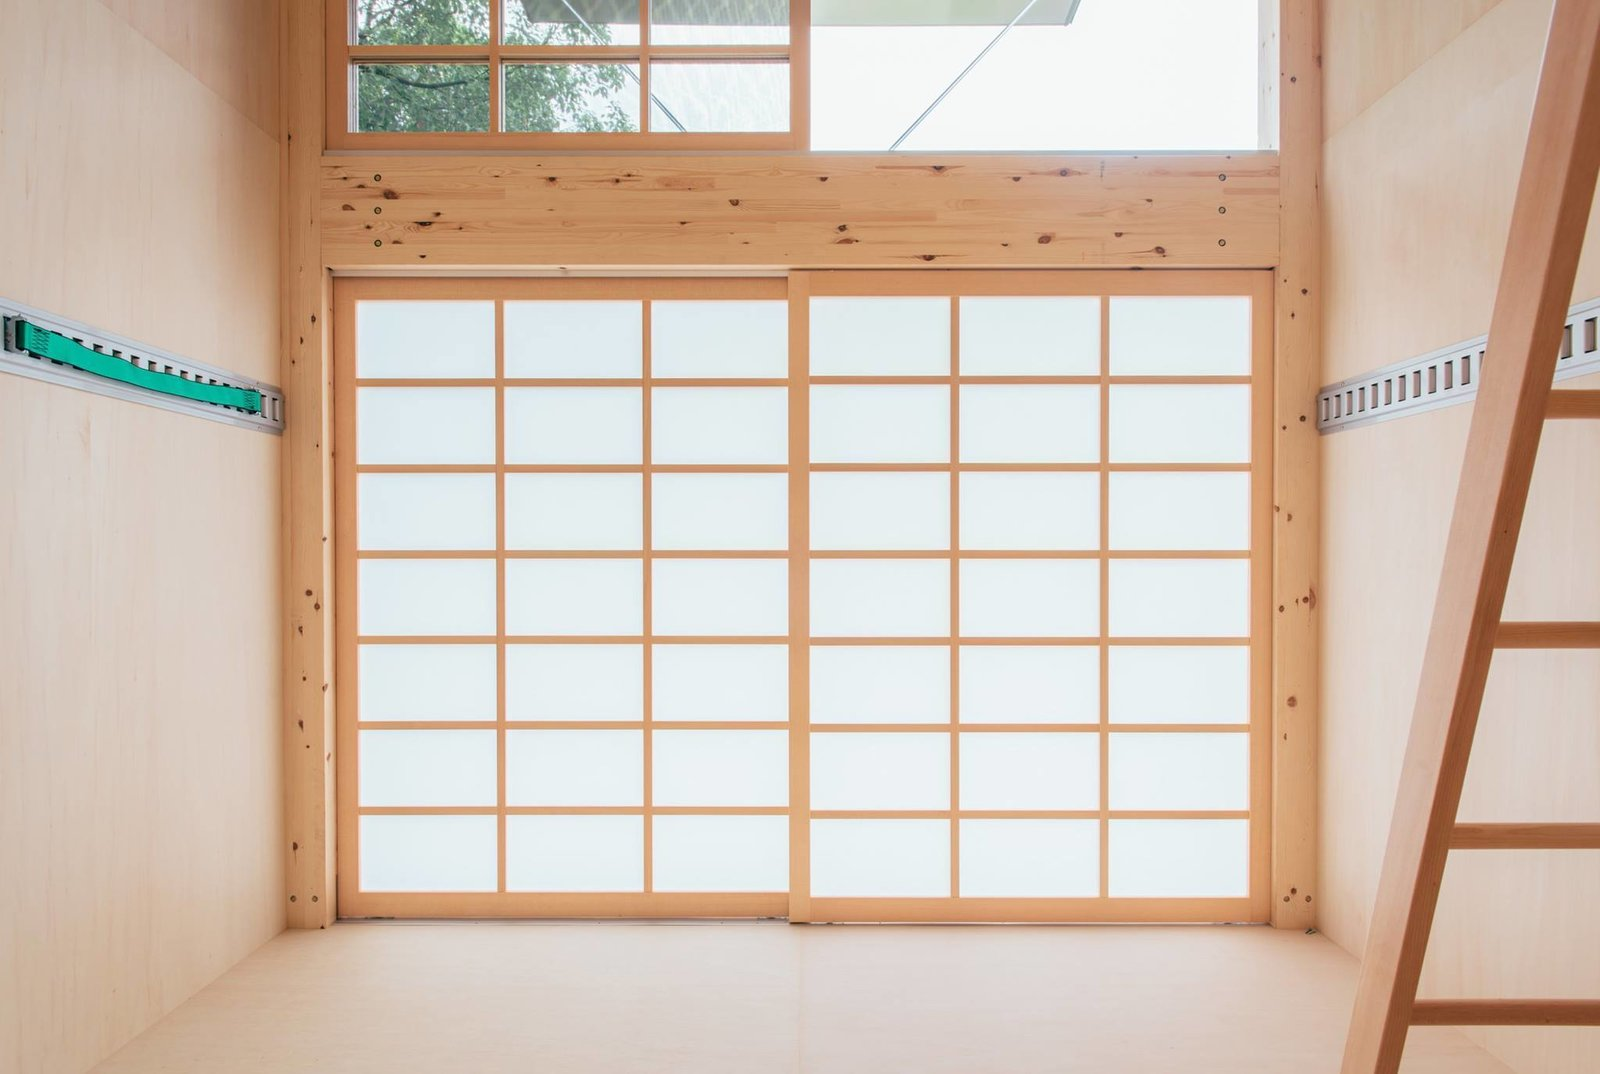 A semi-transparent, shoji-style sliding door allows filtered sunlight into the space, while also maintaining privacy.  Muji Hut Launches With 3 New Tiny Prefab Homes by Aileen Kwun